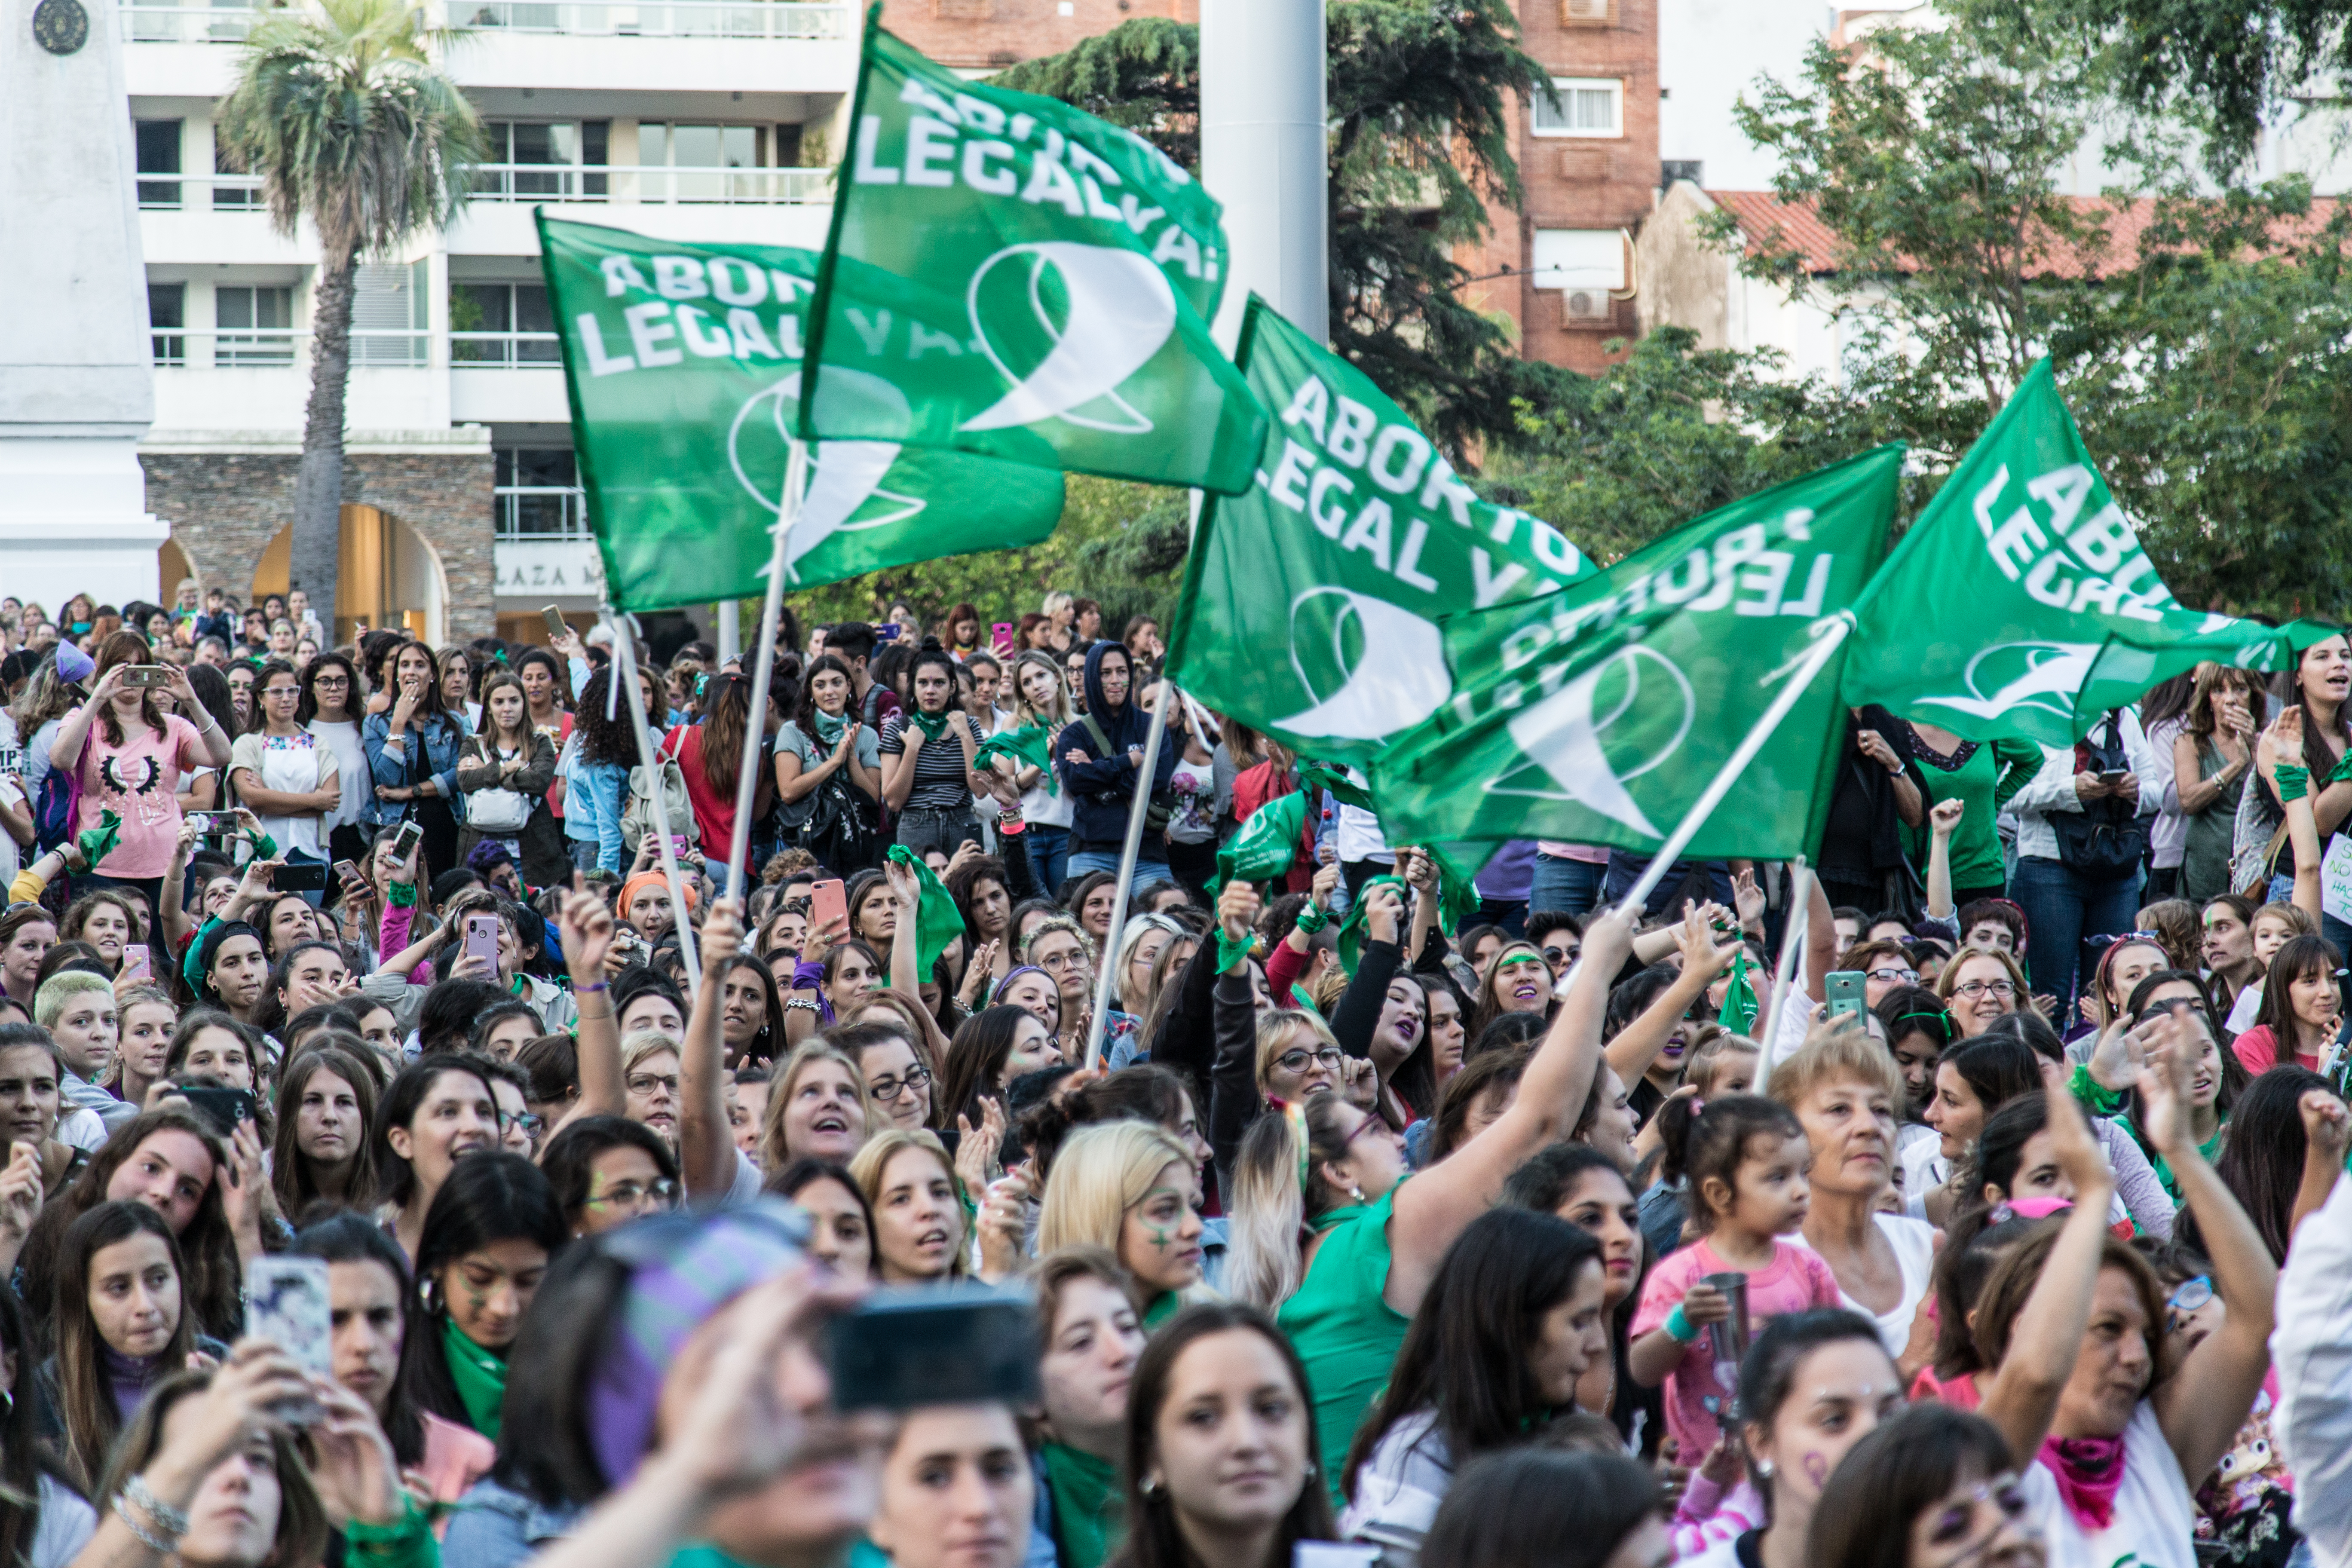 Argentina law legalizing abortion comes into force